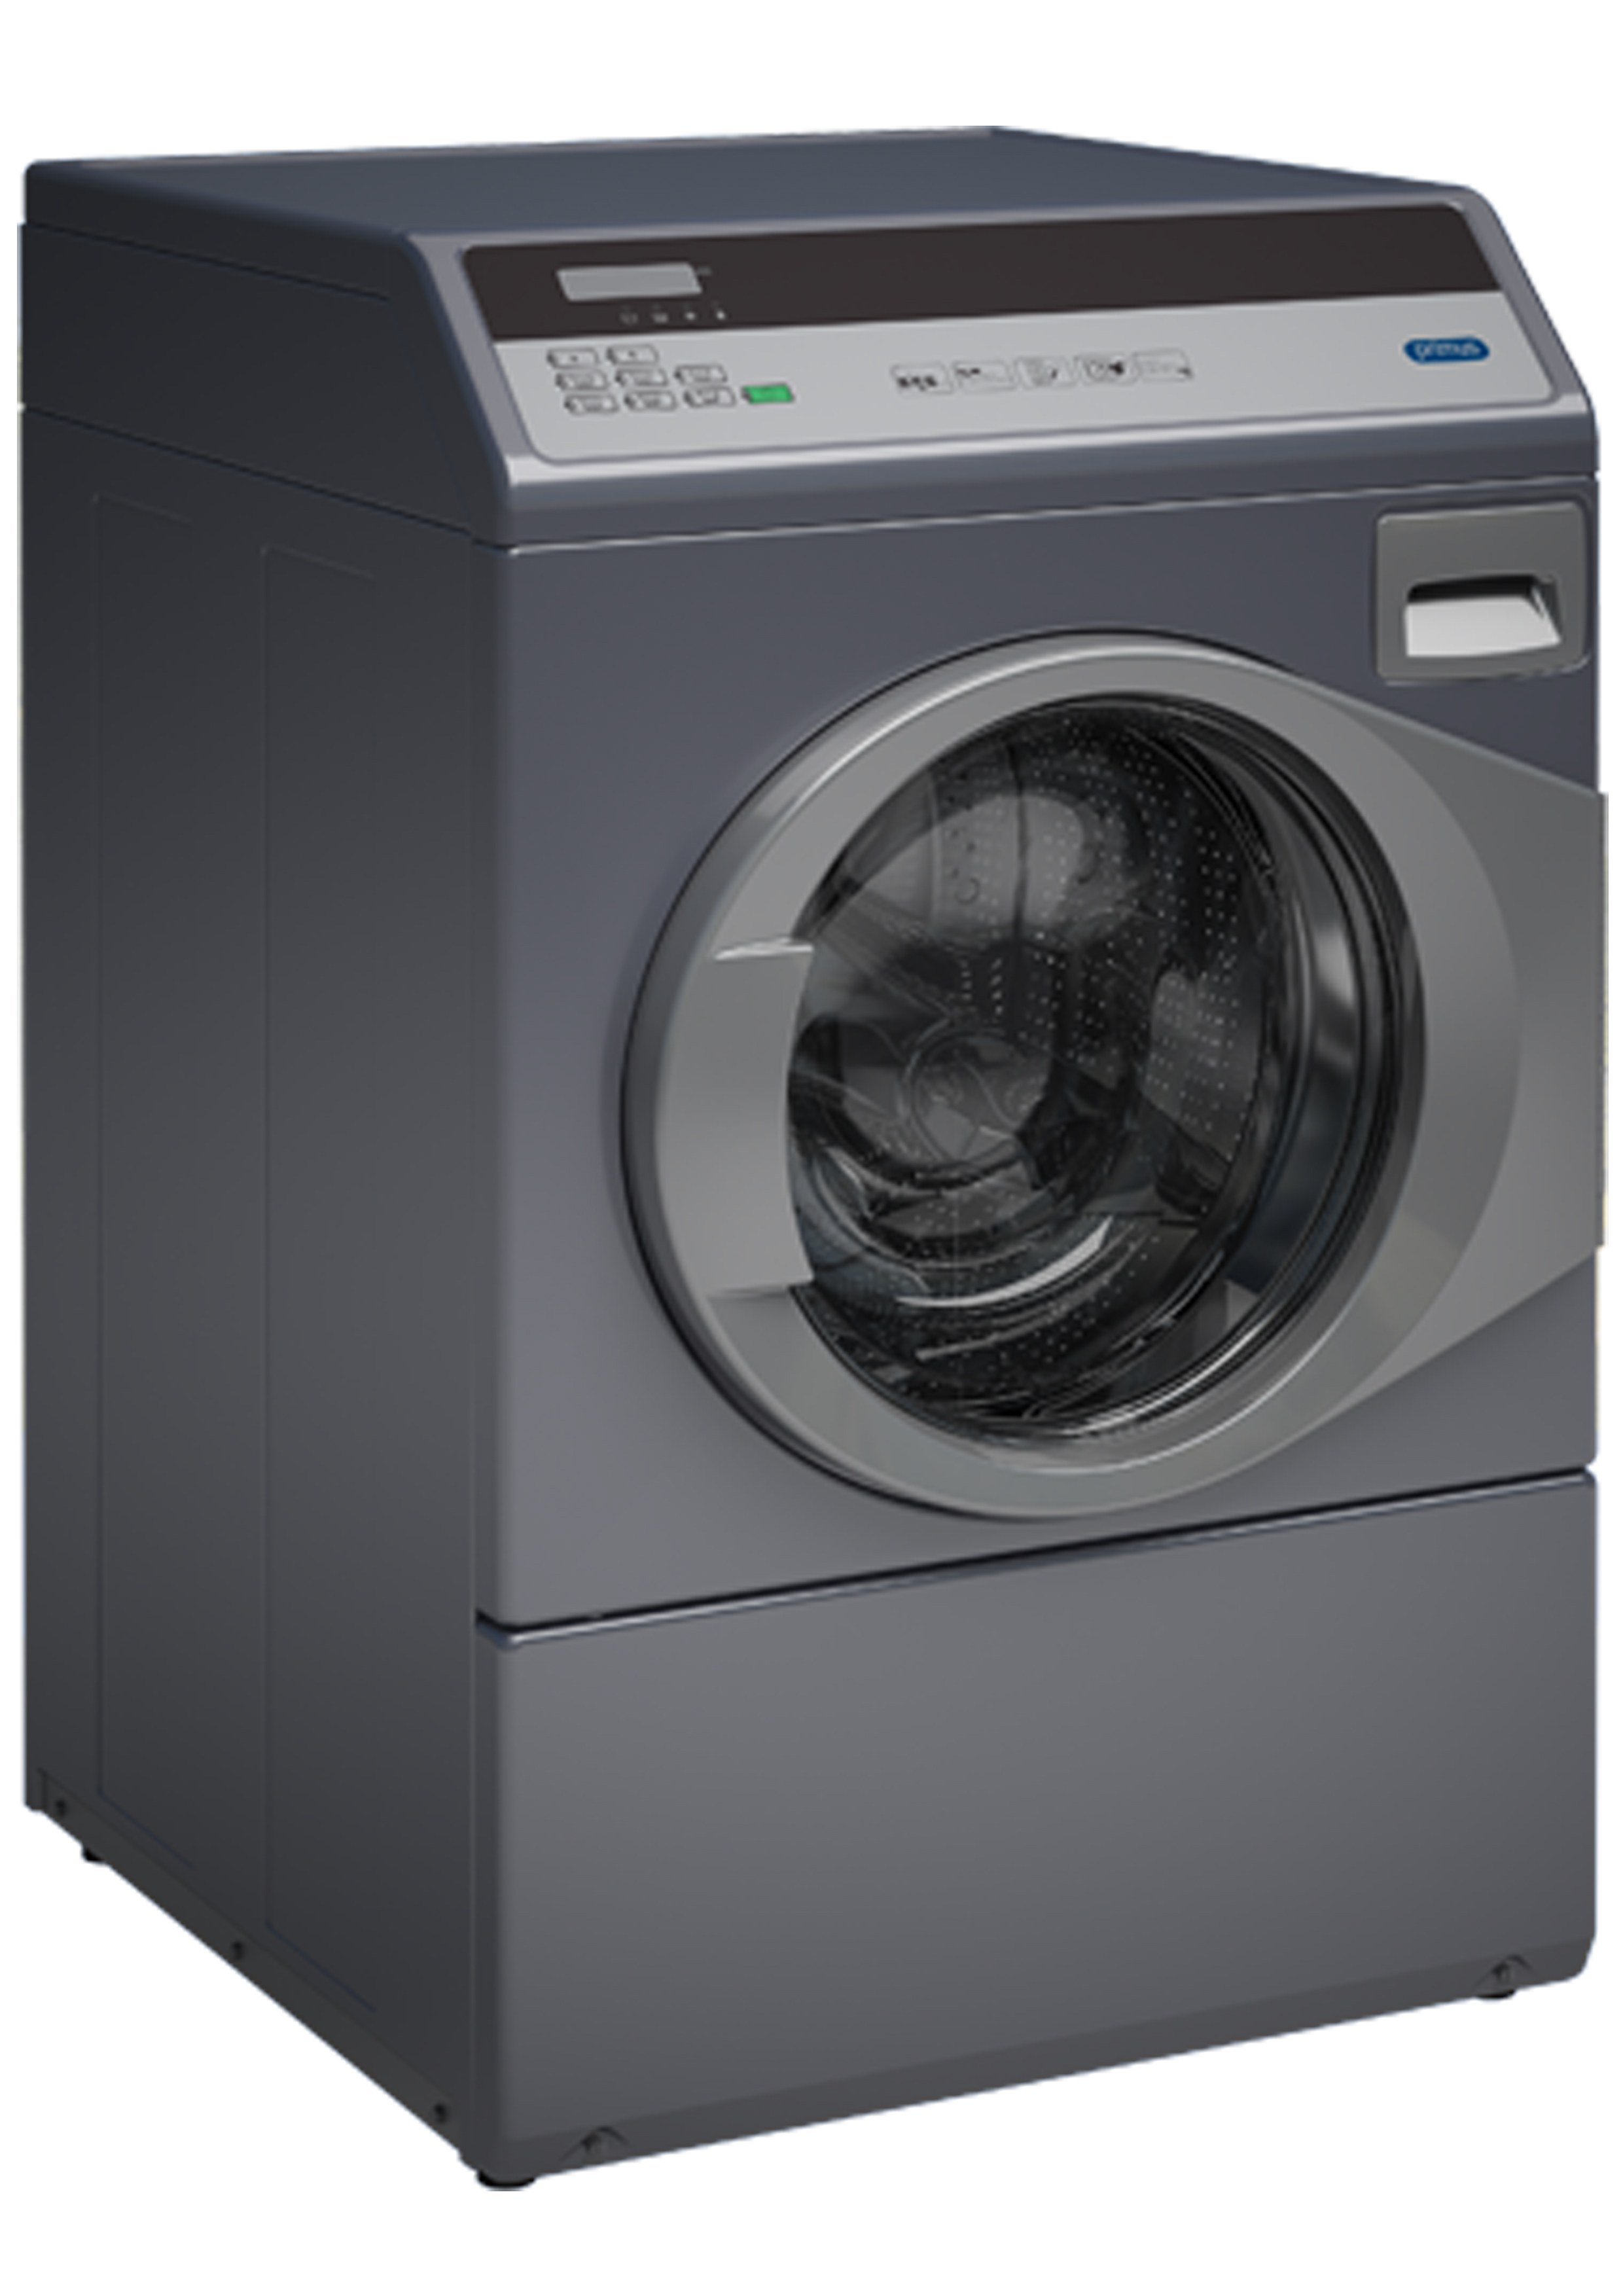 towel-washer-beauty salon